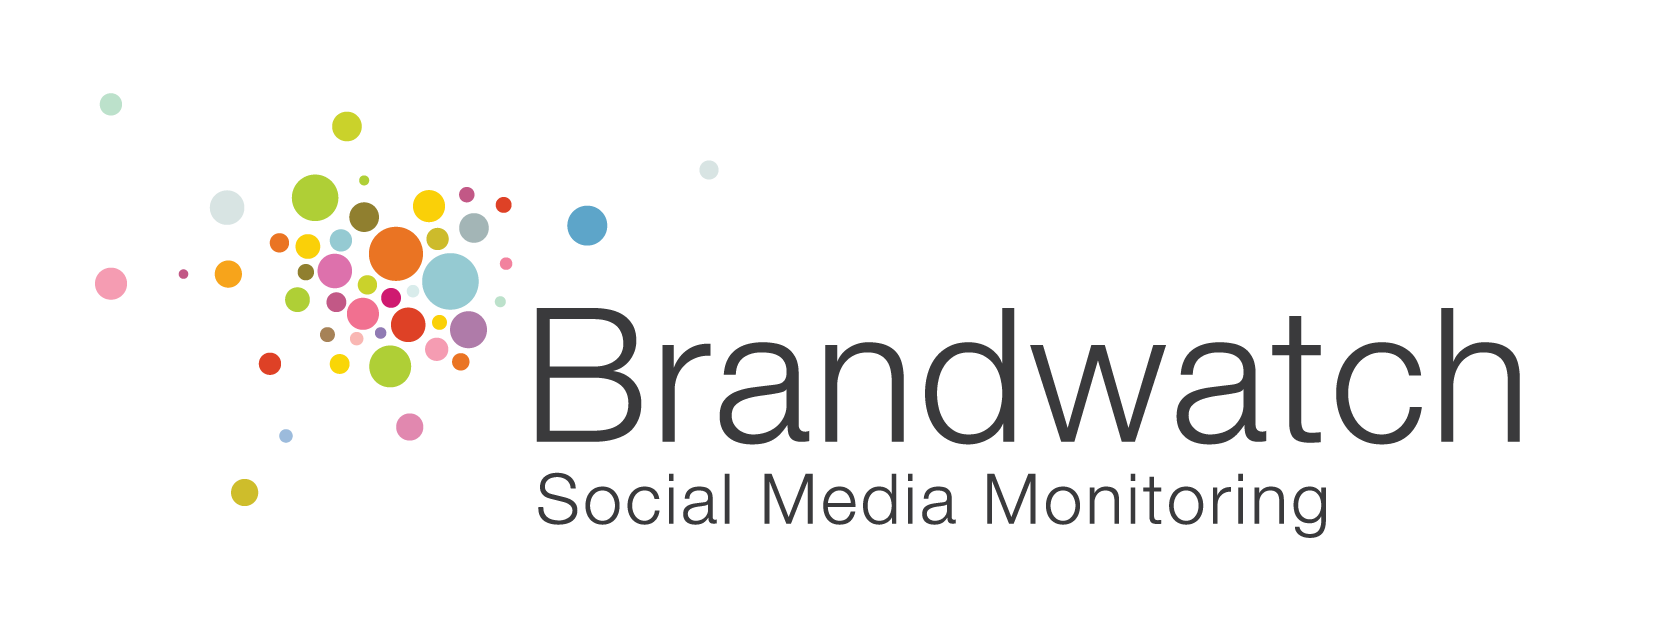 Brandwatch Social Media Monitoring